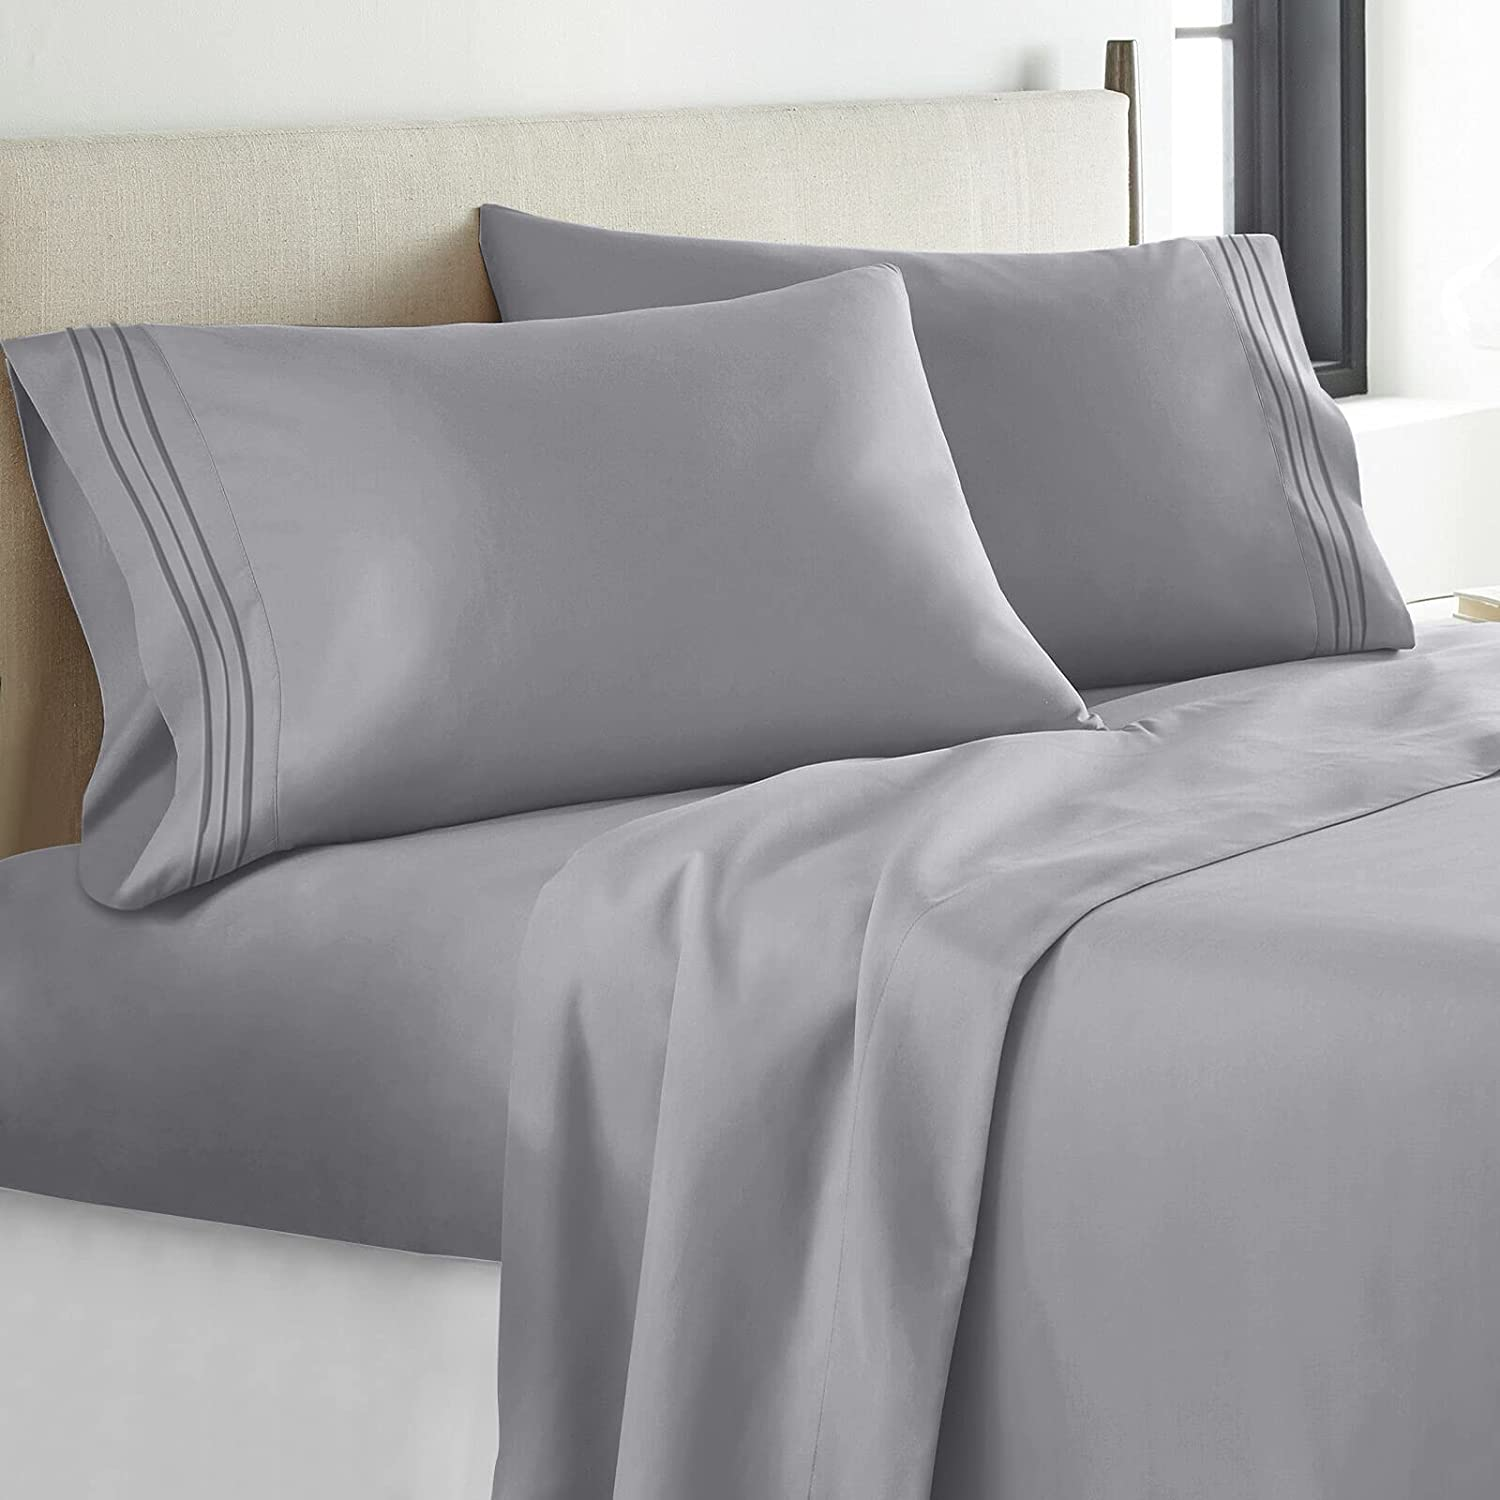 YIYEA Full Sheet Set - 4 Pieces Bedding Sheets & Pillowcases Ultra Soft Breathable 16 inch Deep Pocket Microfiber 1800 Thread Count - Wrinkle, Fade, Stain Resistant Washable-Grey : Home & Kitchen